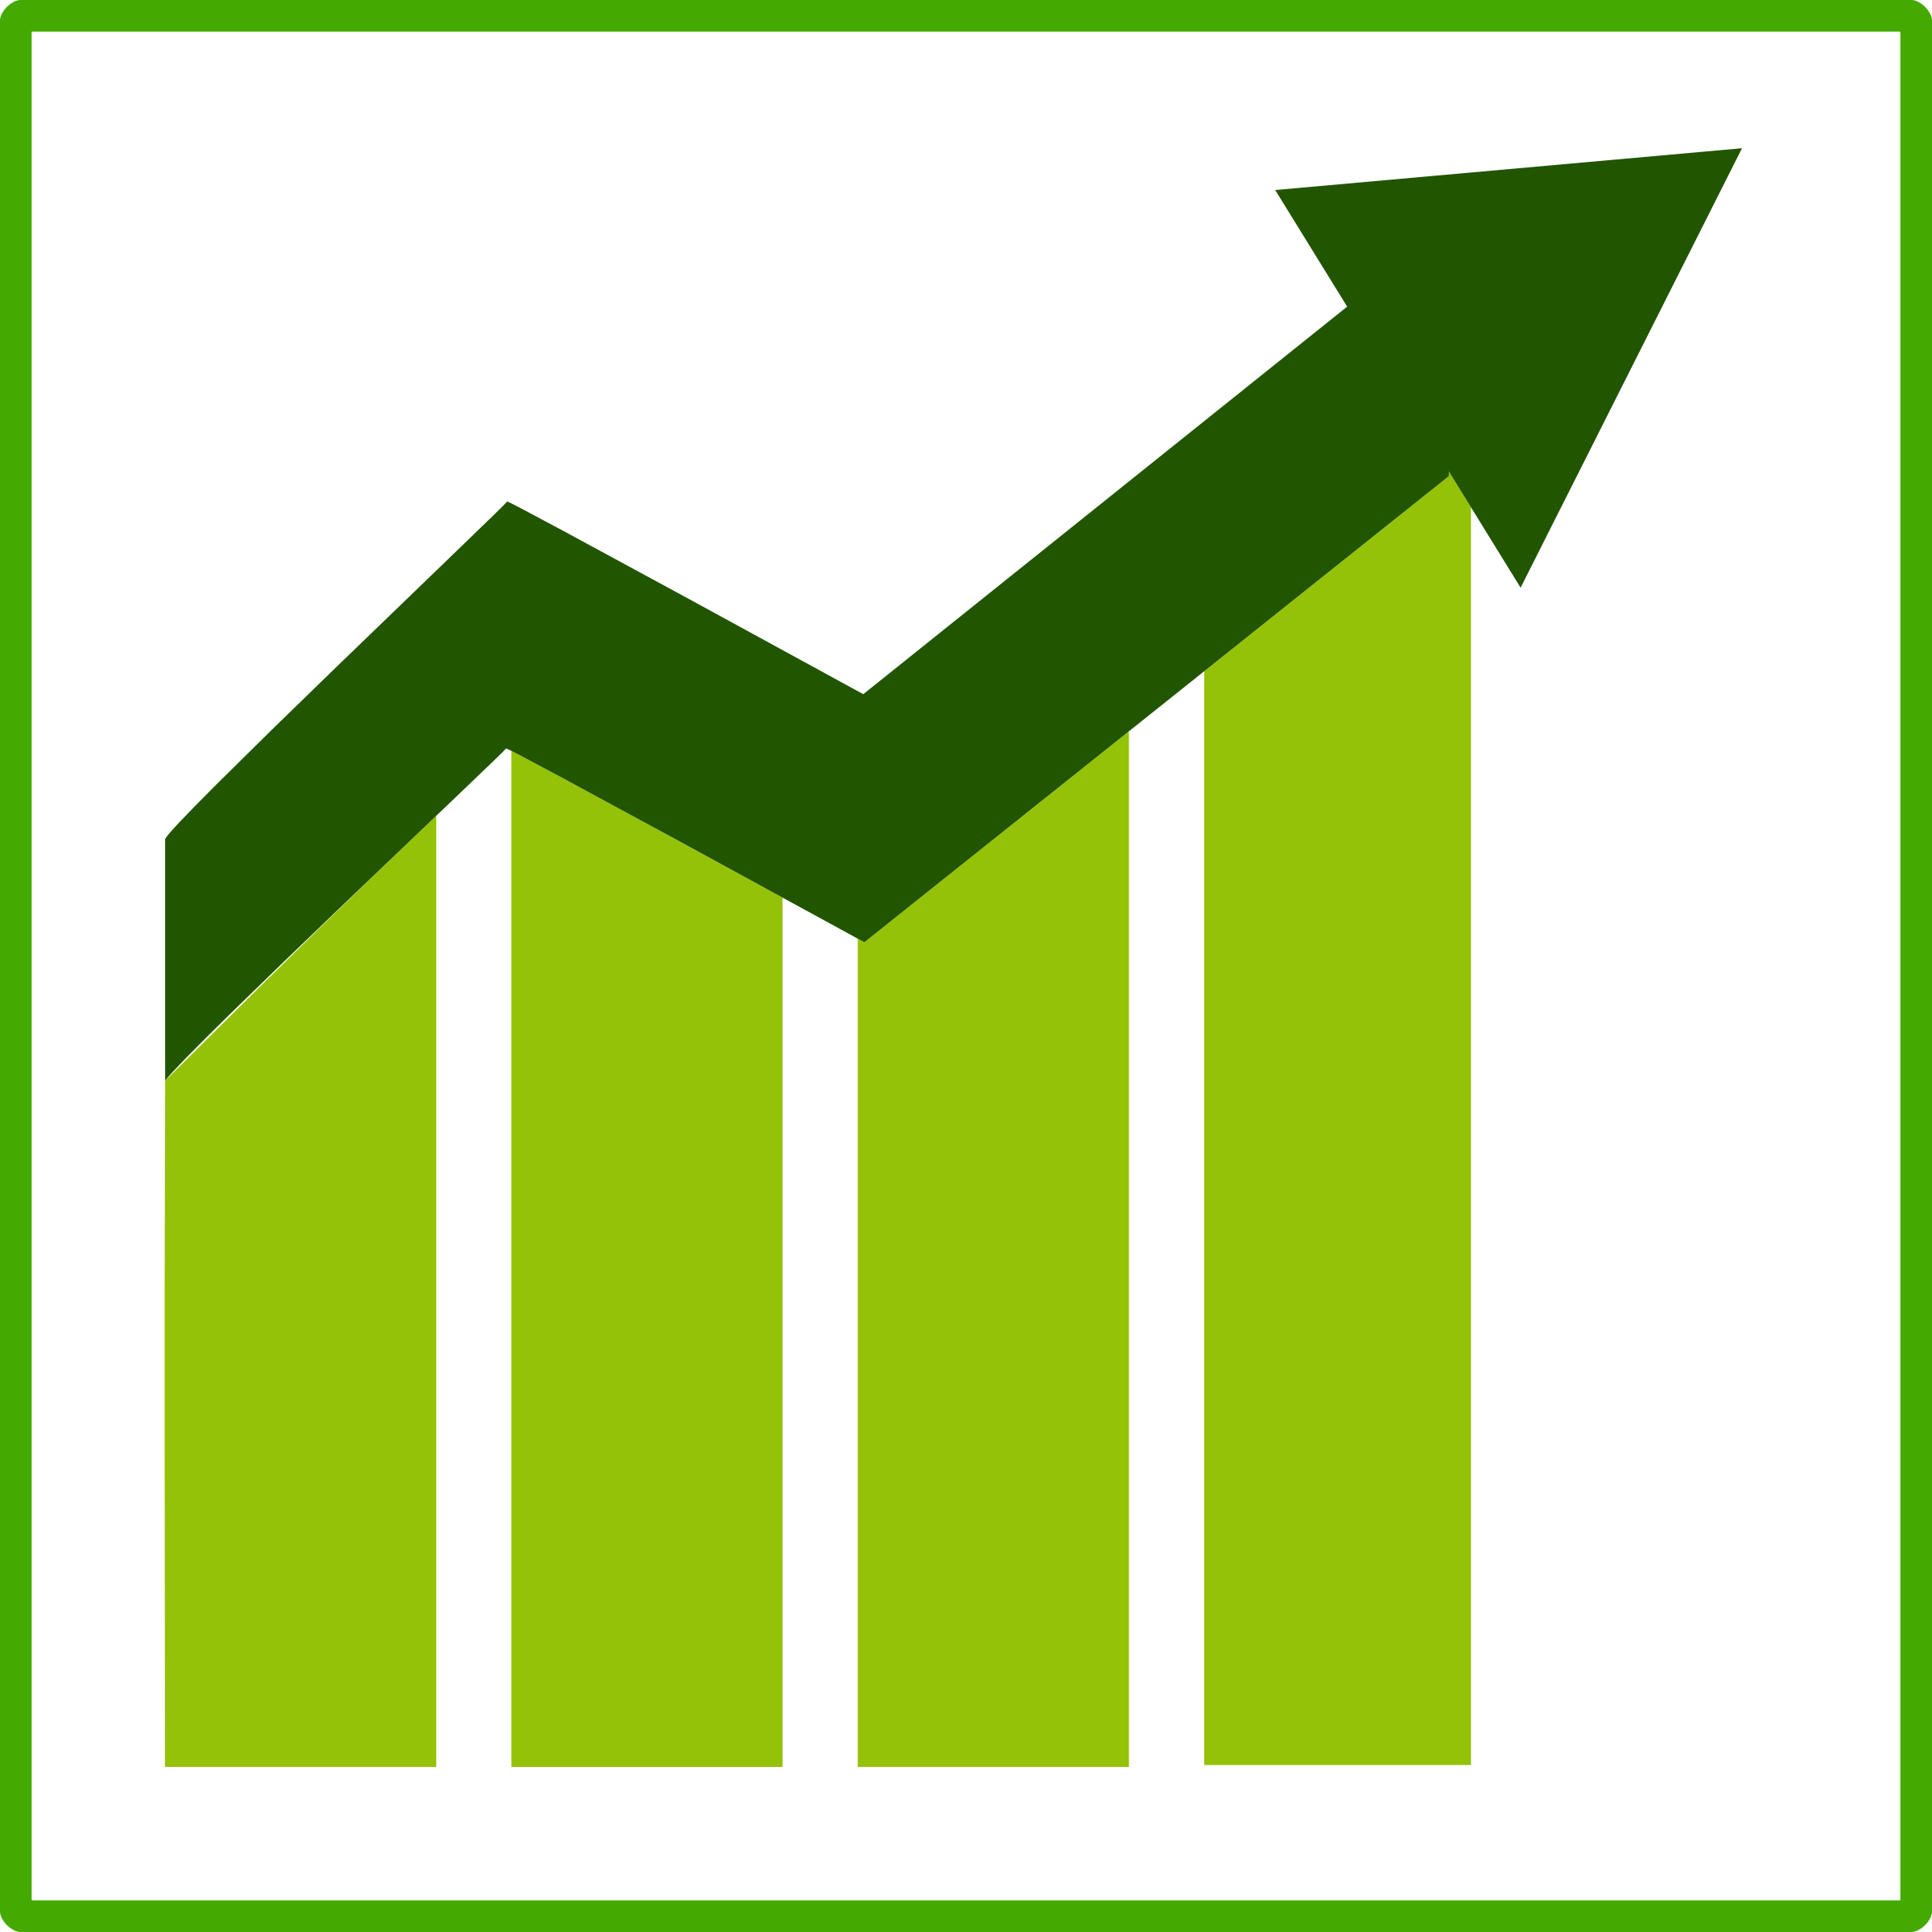 Number 1 clipart green. Economic growth increase clip